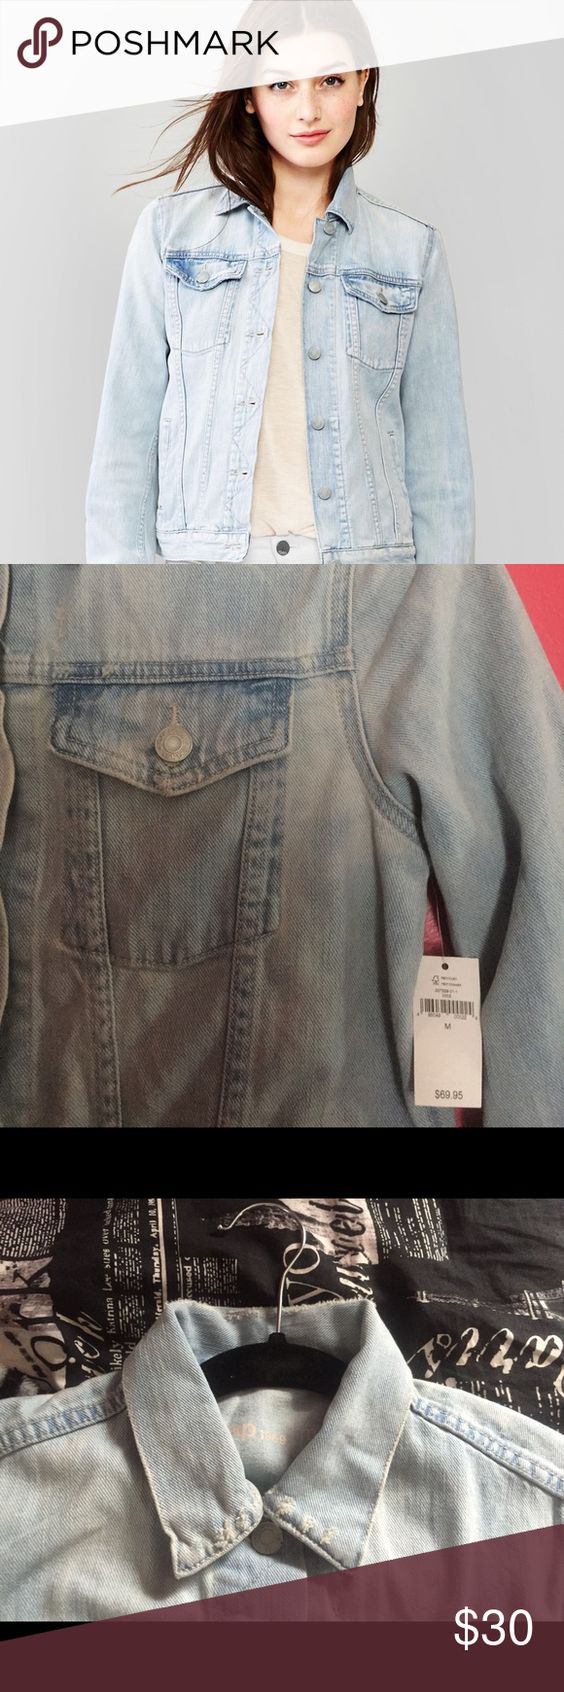 GAP 1969 icon denim jacket Light indigo blue, tailored silhouette, hits at hips, lightly destructed/worn look. 100% cotton. NWT. GAP Jackets & Coats Jean Jackets